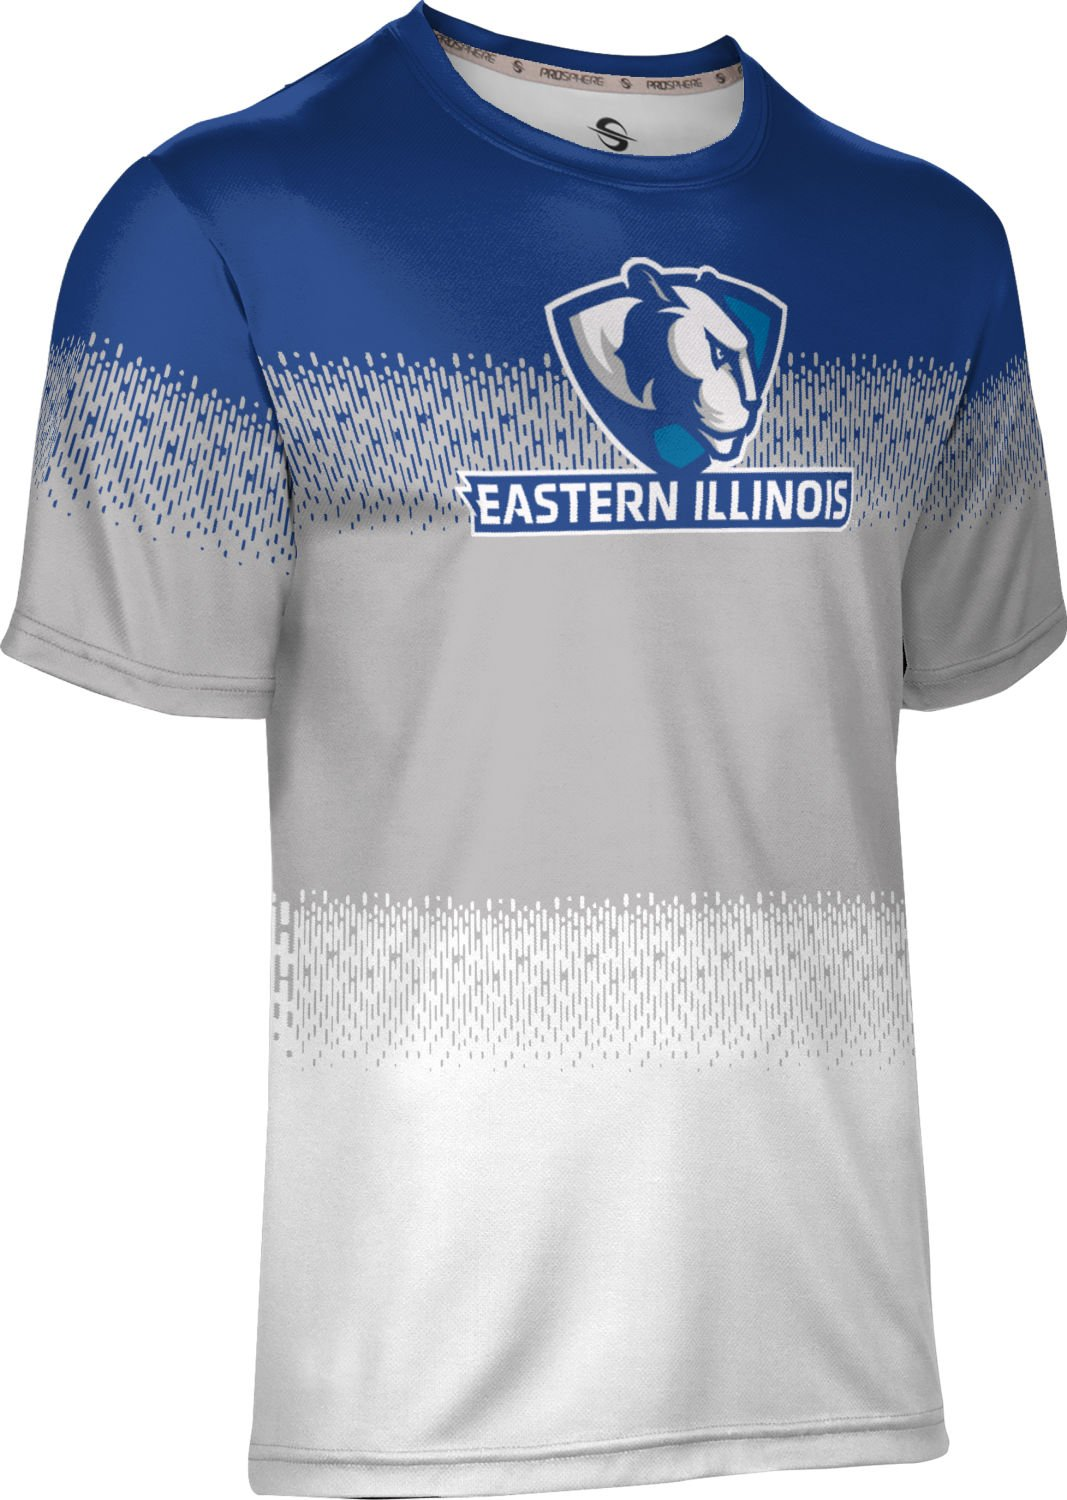 ProSphere Eastern Illinois University Boys Performance T-Shirt Digi Camo